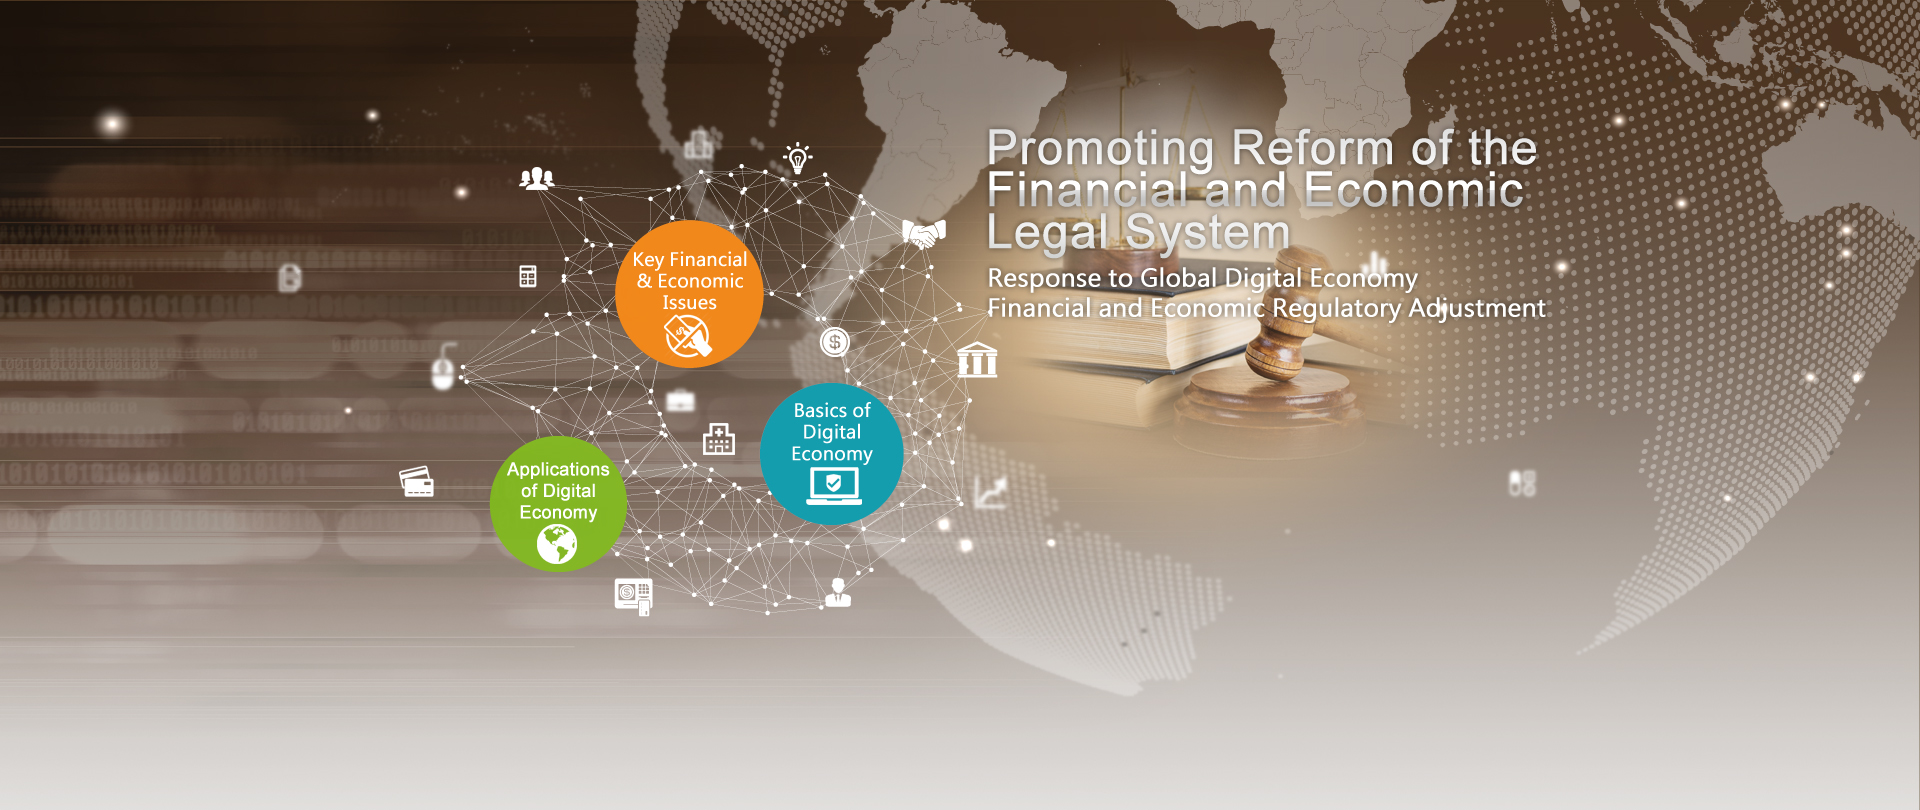 Promoting Reform of the Financial and Economic Legal System